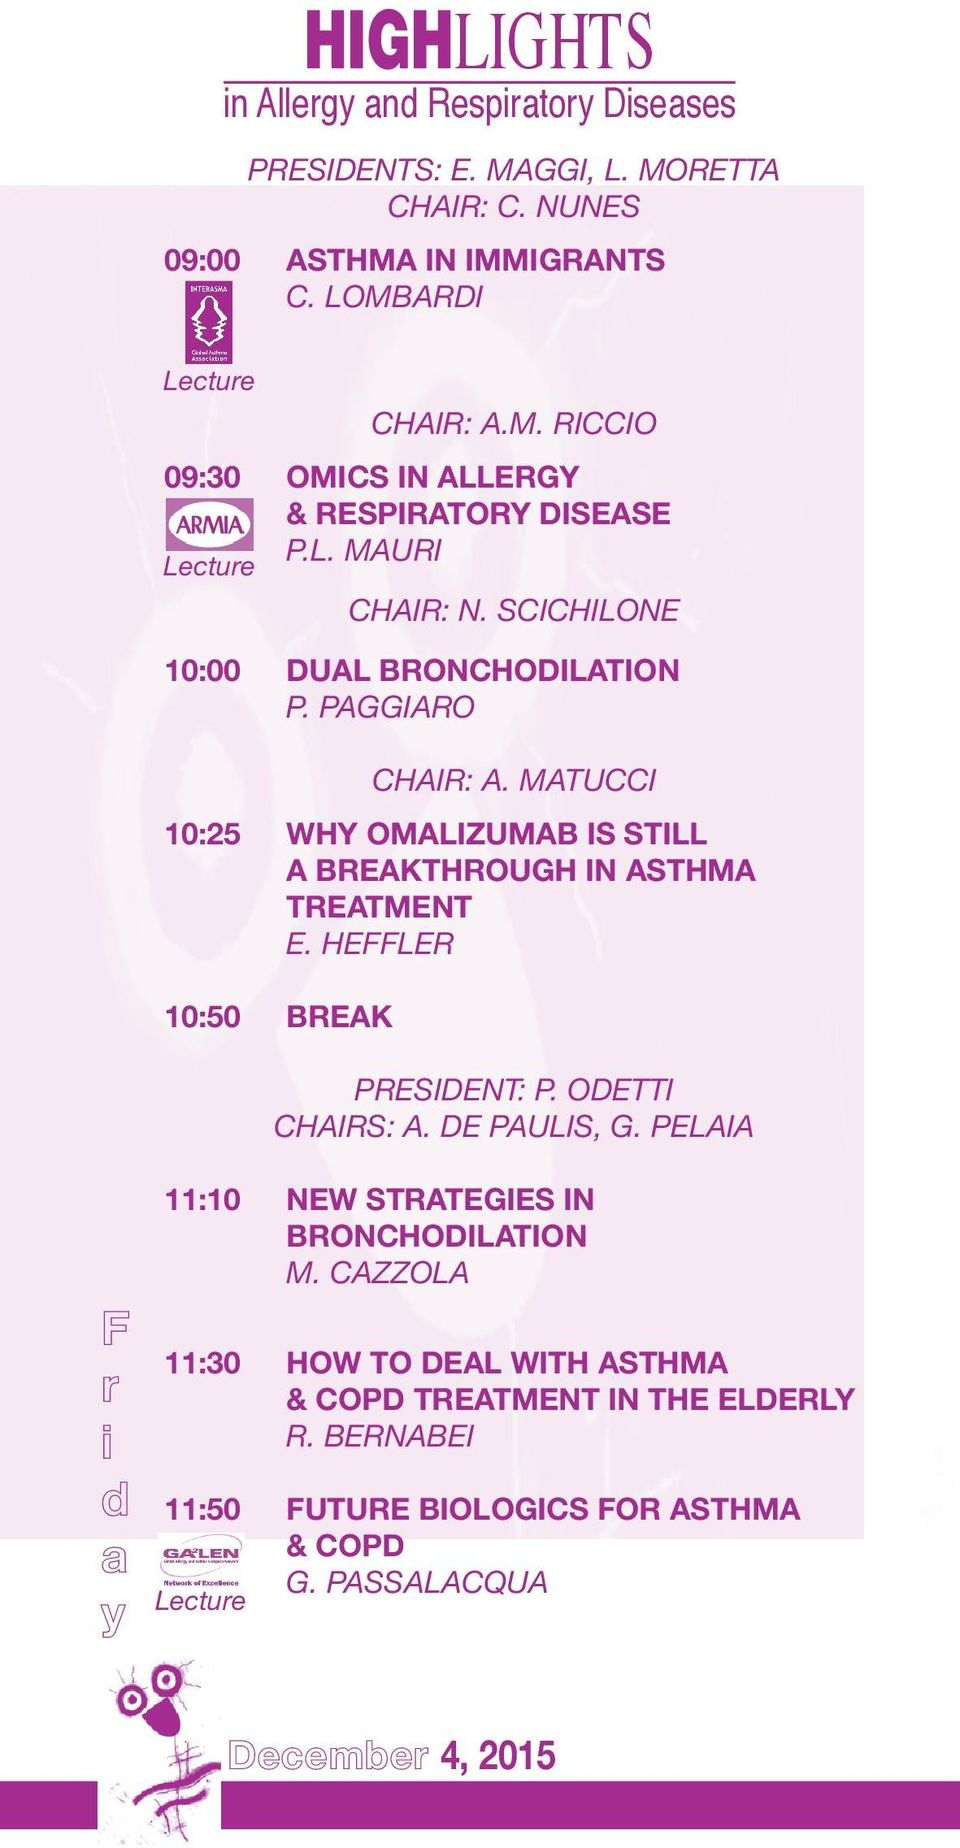 MATUCCI 10:25 WHY OMALIZUMAB IS STILL A BREAKTHROUGH IN ASTHMA TREATMENT E. HEFFLER 10:50 BREAK PRESIDENT: P. ODETTI CHAIRS: A. DE PAULIS, G.